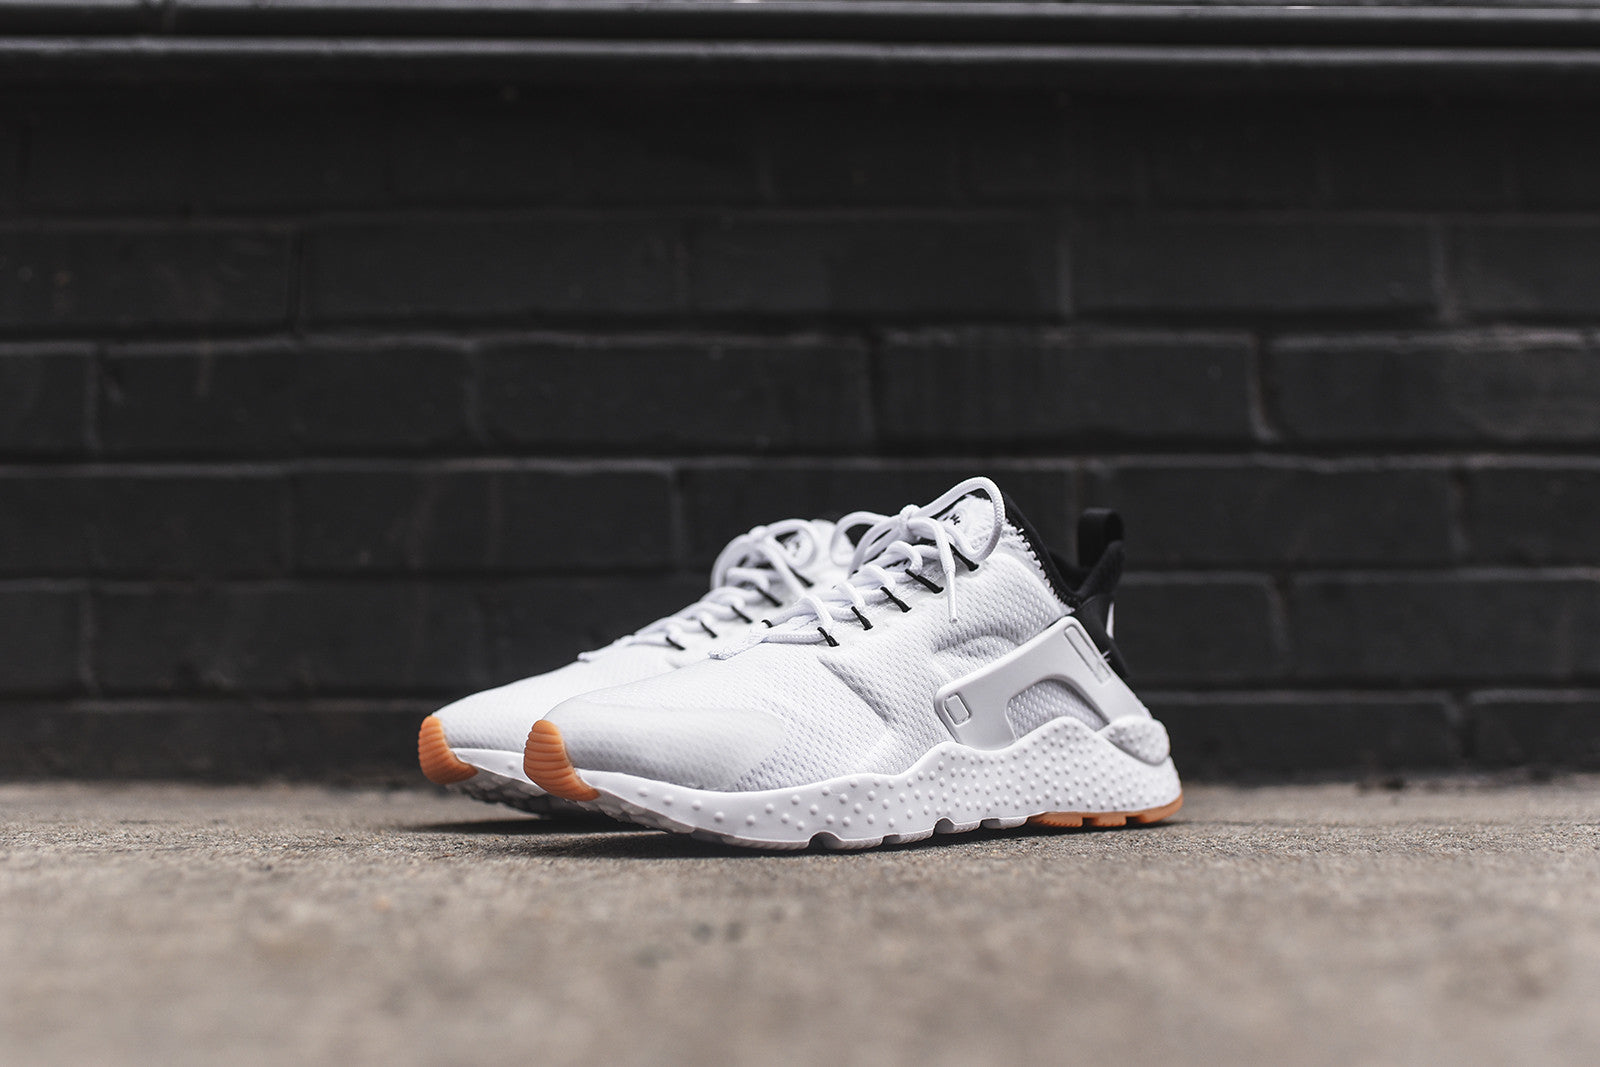 Nike WMNS Huarache Run Ultra - White / Black